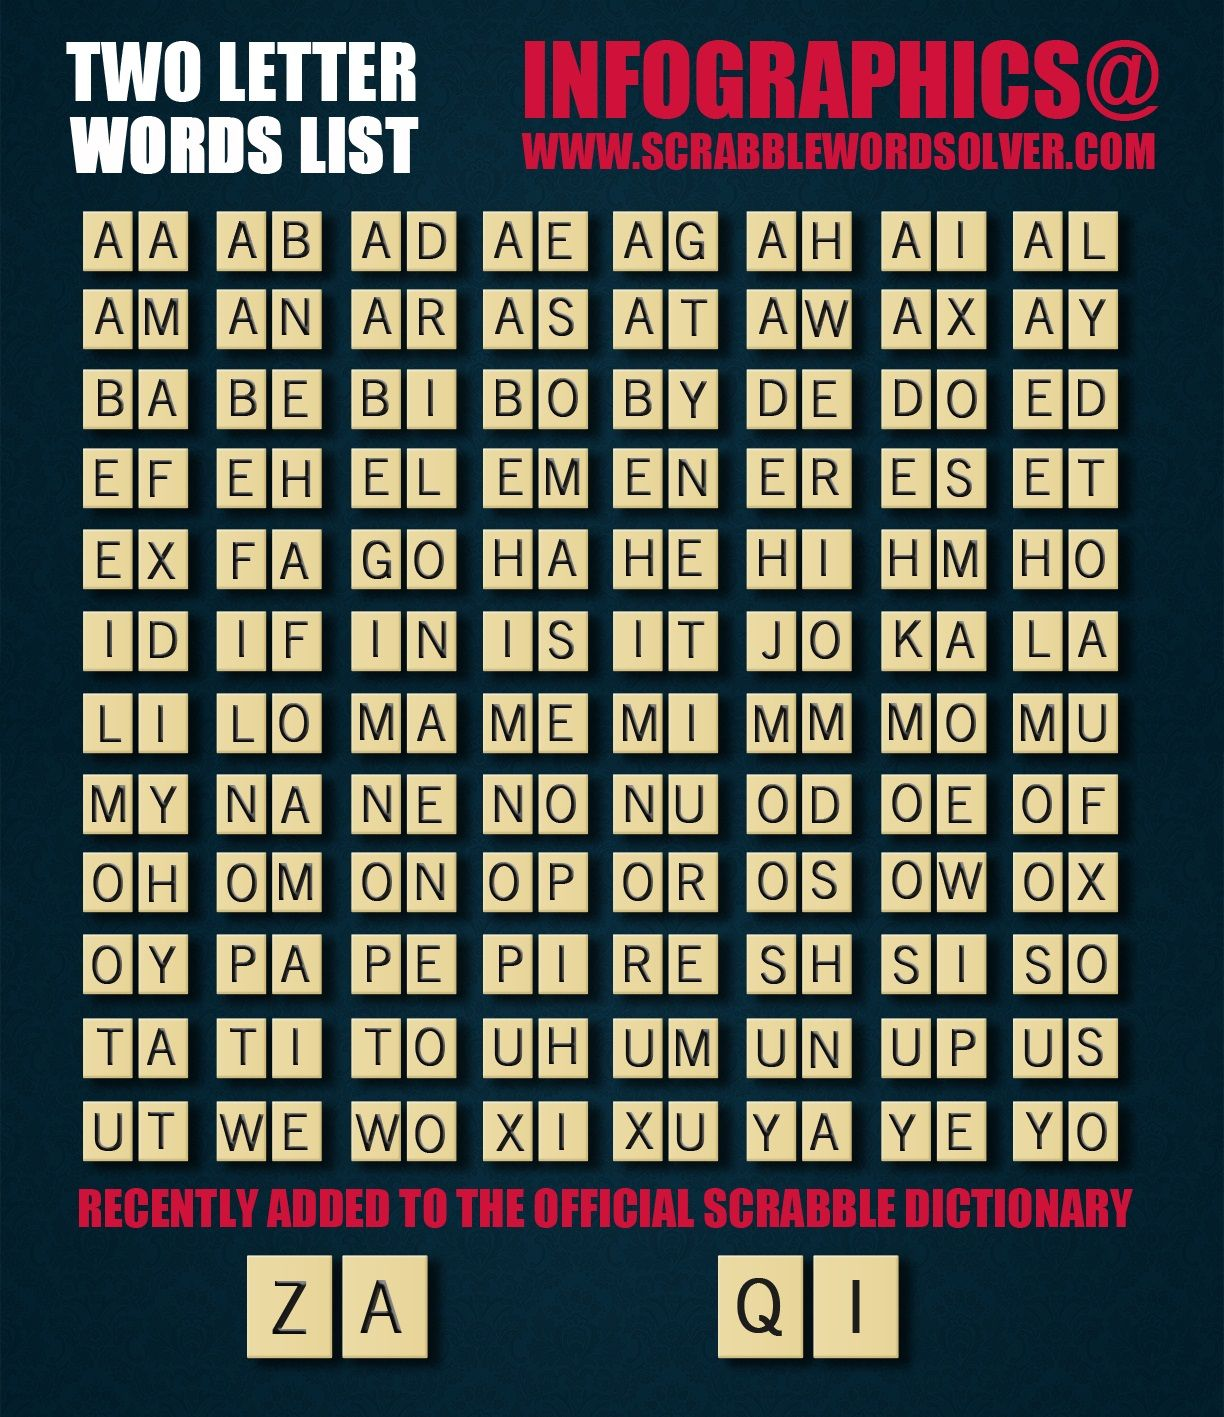 Official 2 Two Letter Word List For Scrabble Visual Trivia